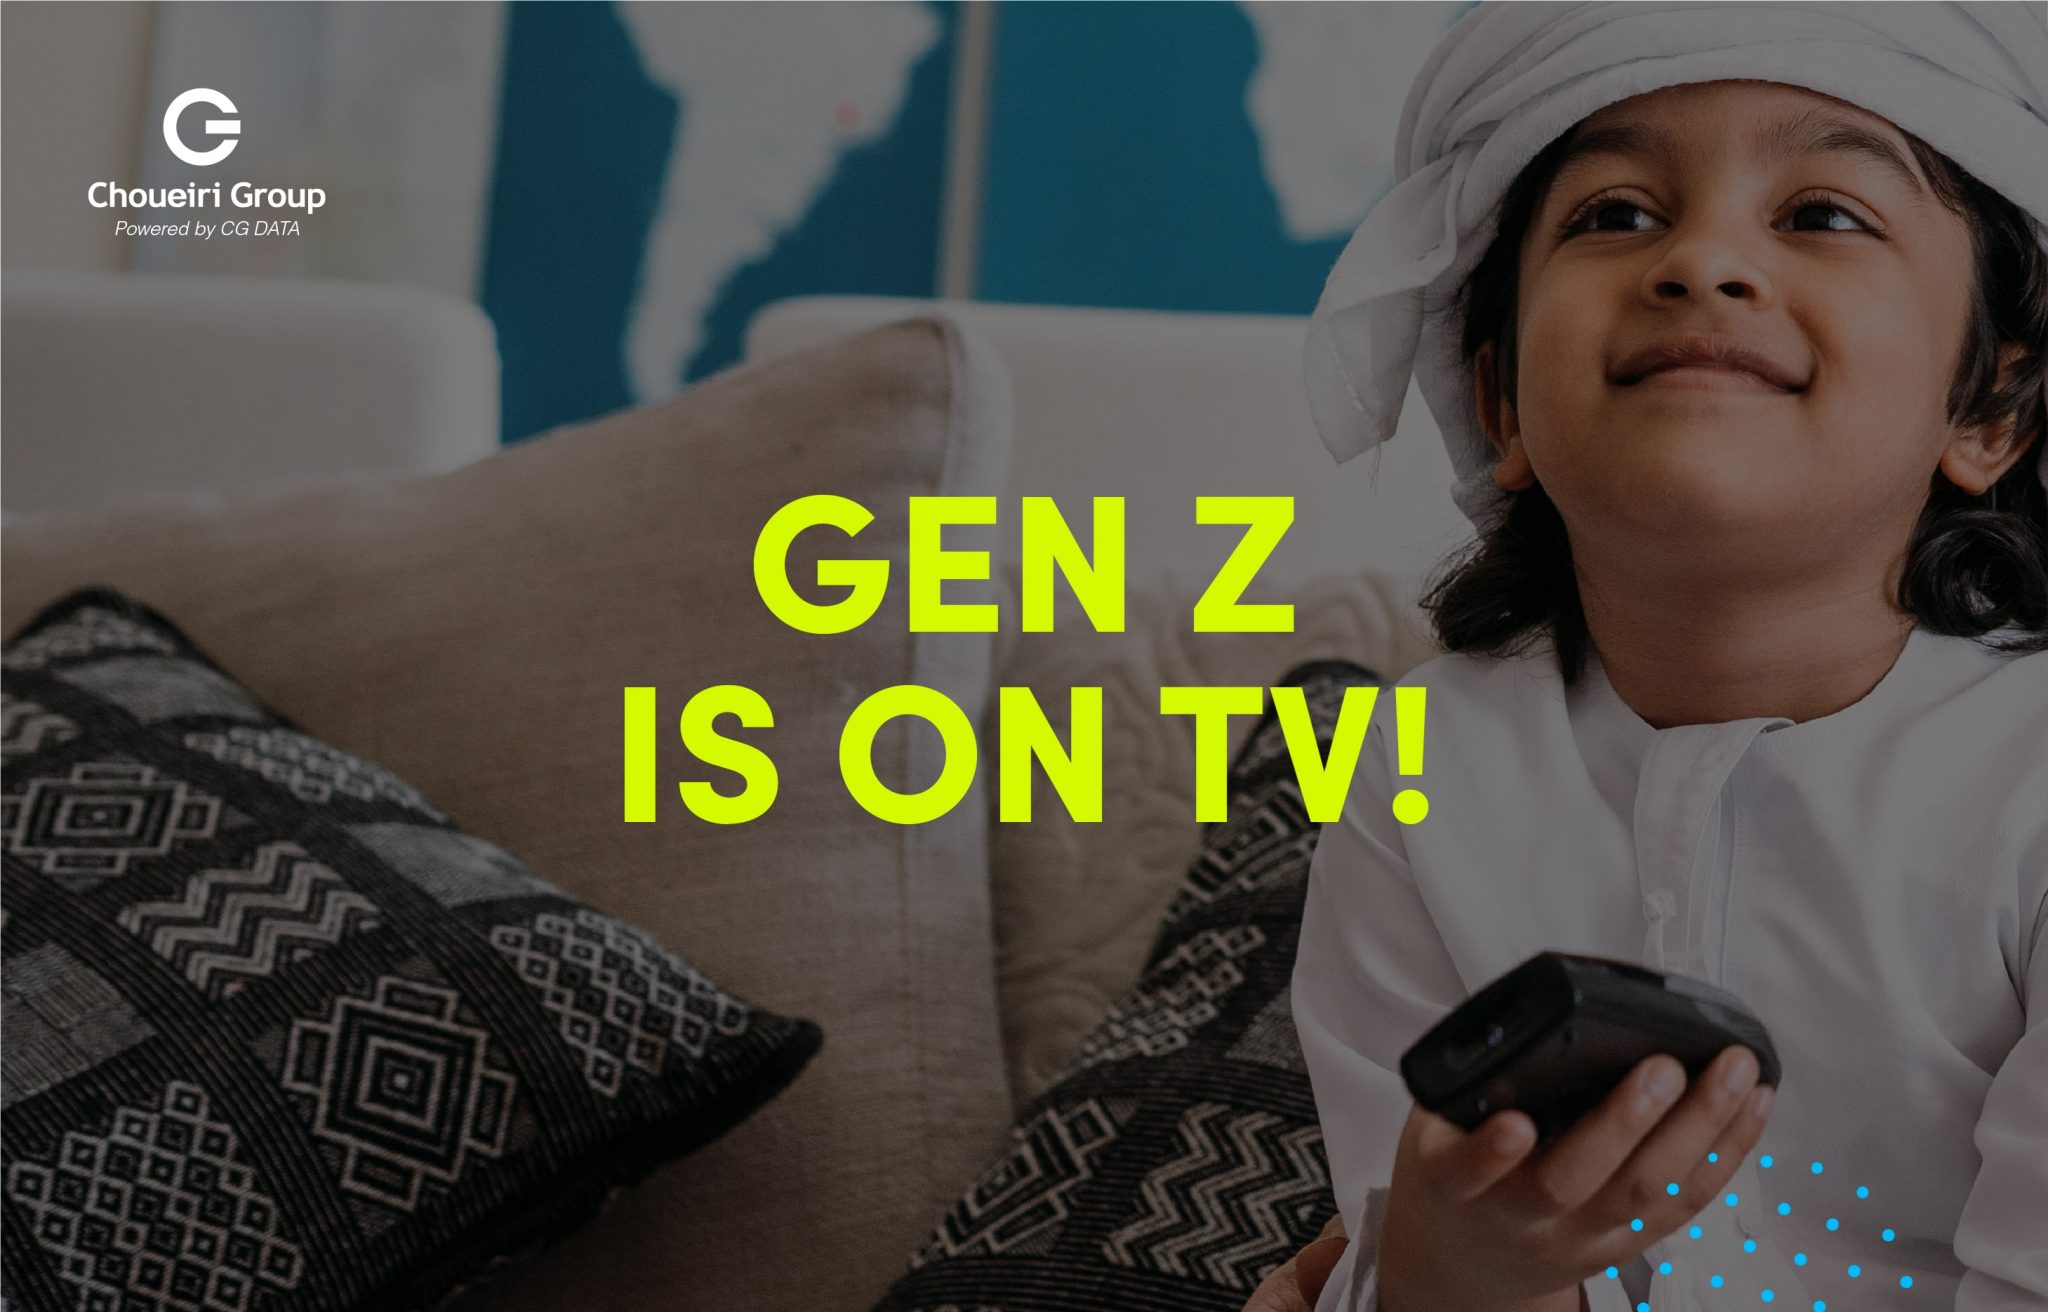 gen-z-is-on-tv--discover-our-latest-insights